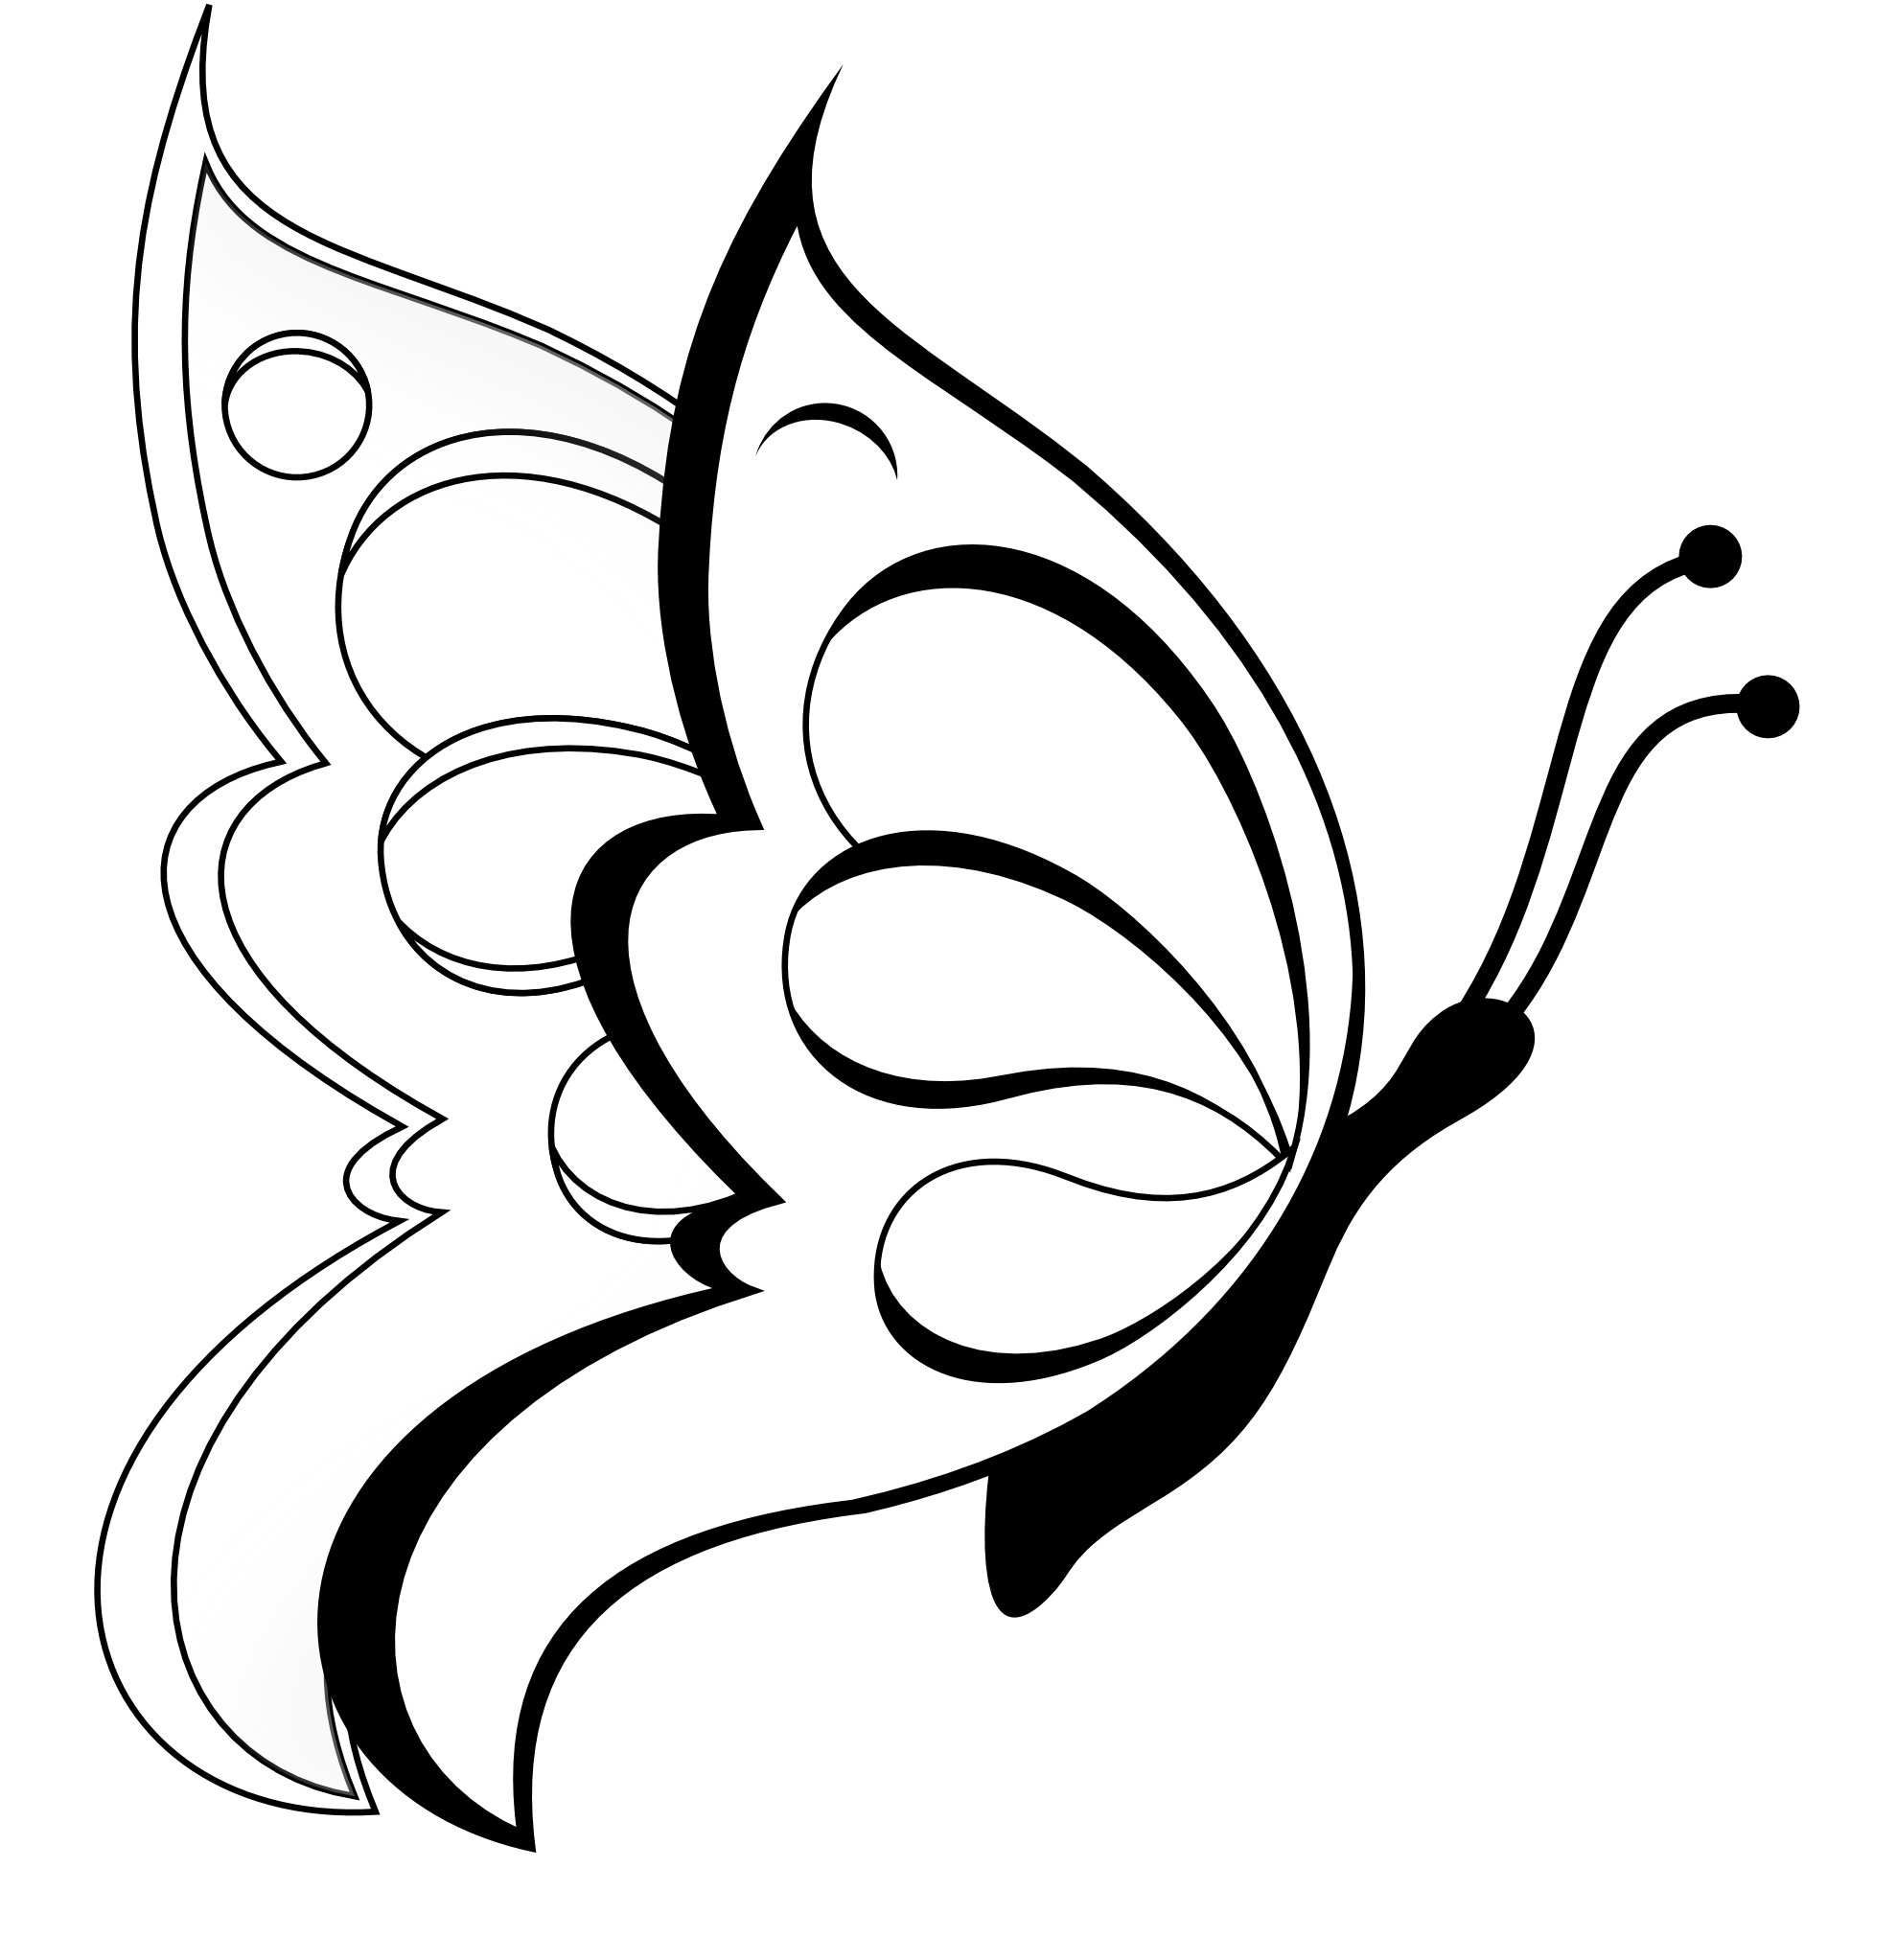 coloring bird png butterfly clipart butterfly 19 black white line art bird coloring png